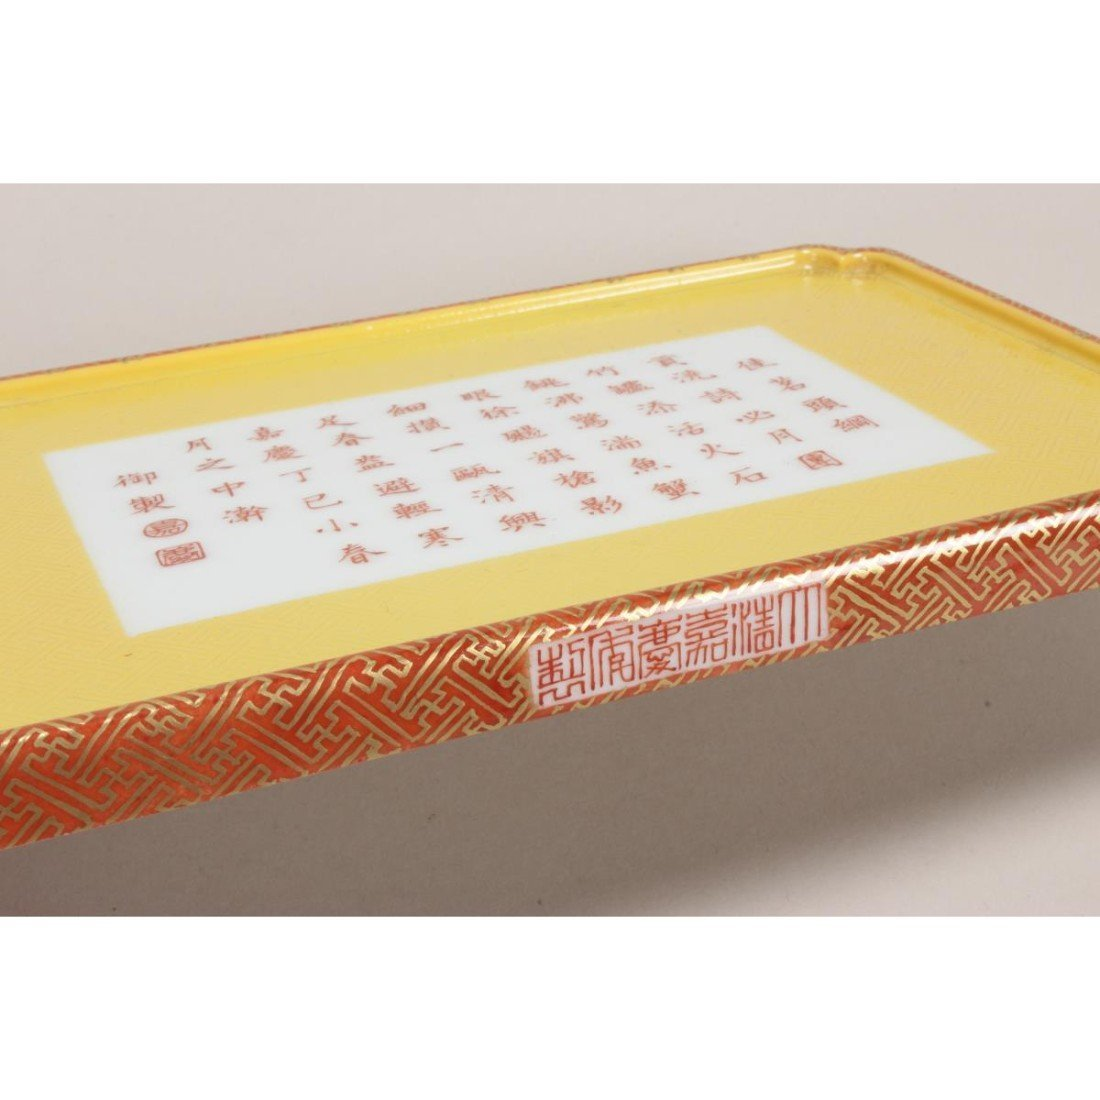 Chinese Porcelain Tray,